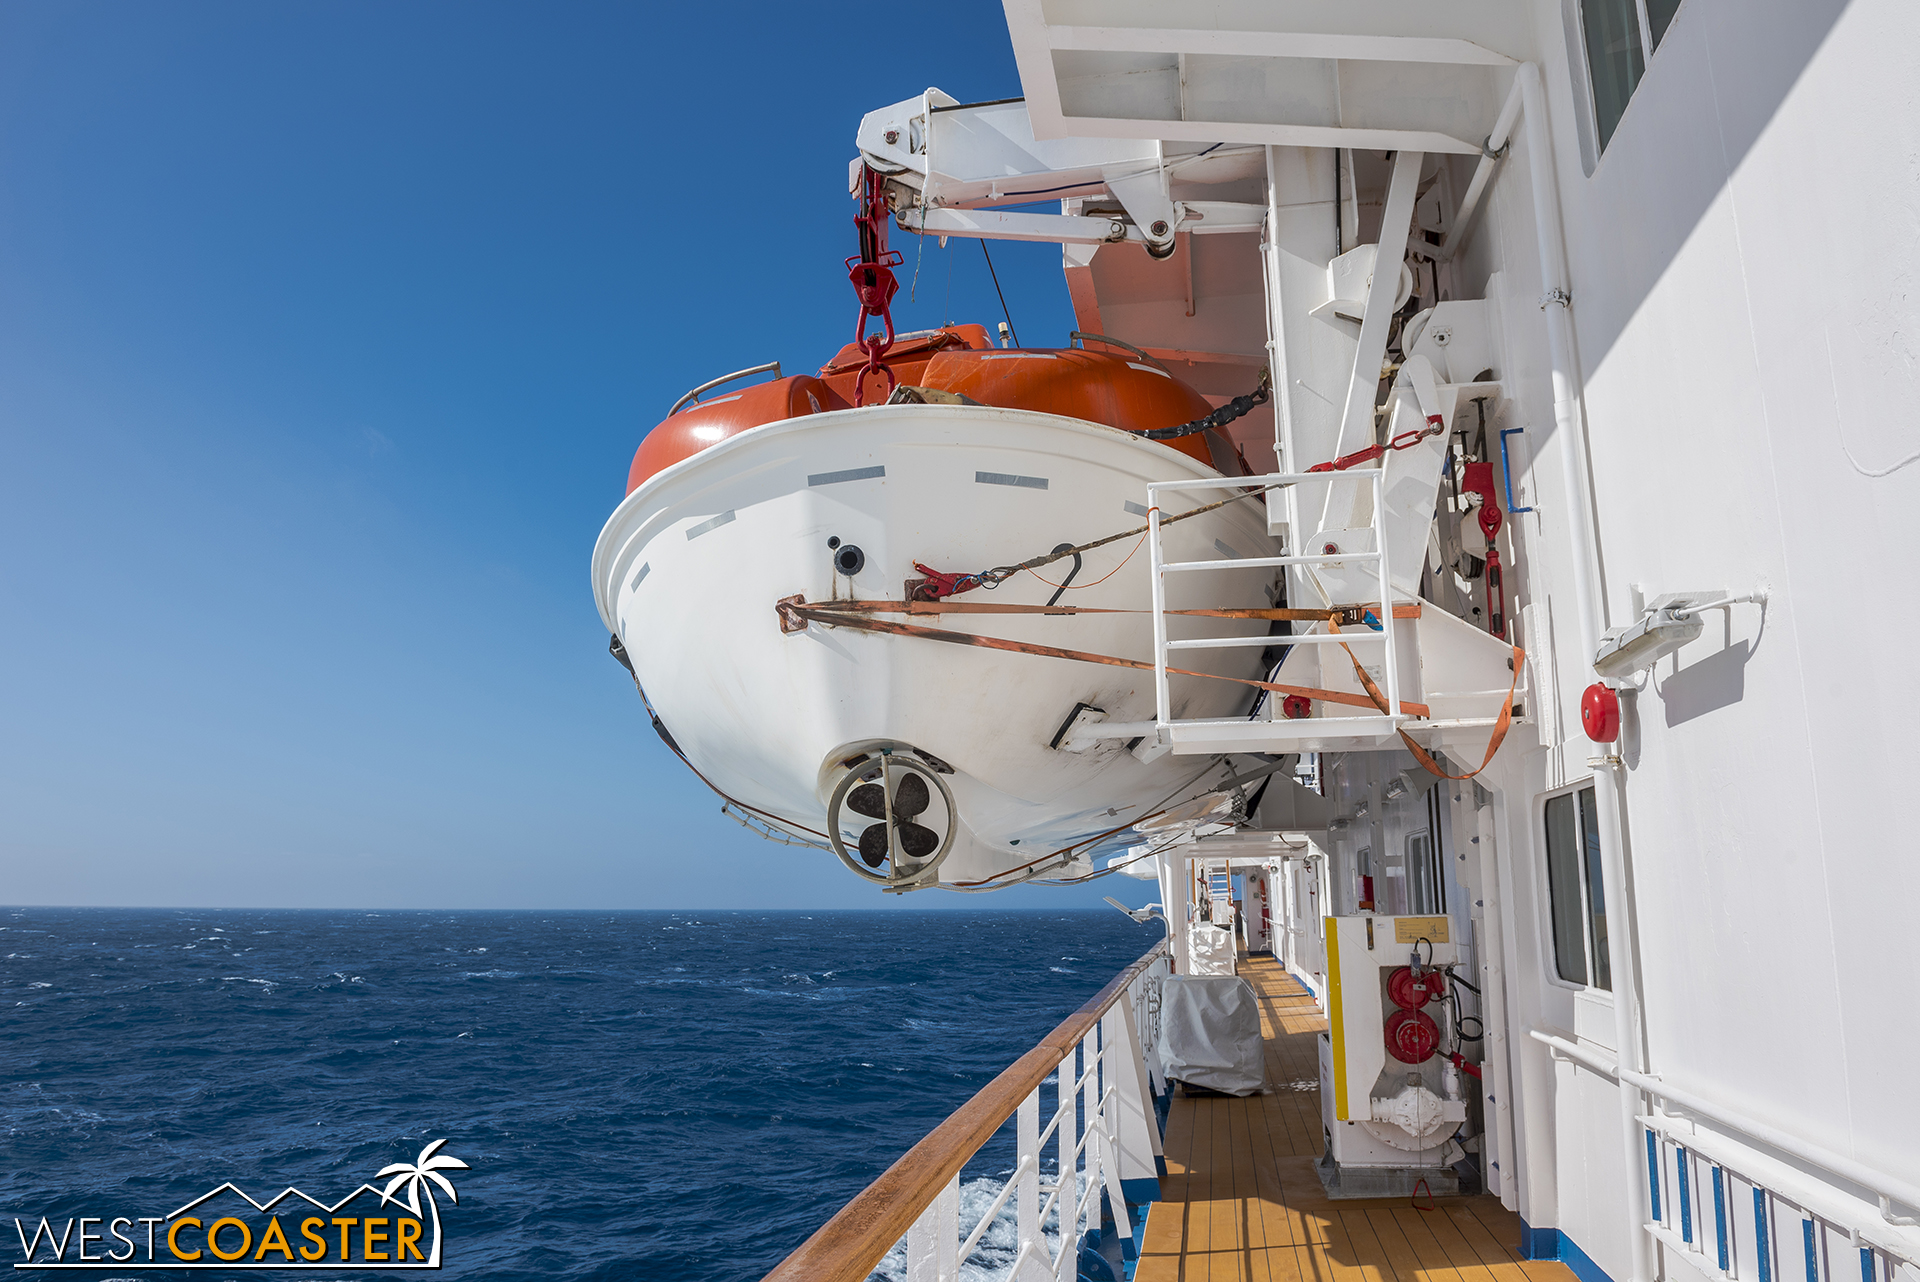 Walking along the side of the ship.